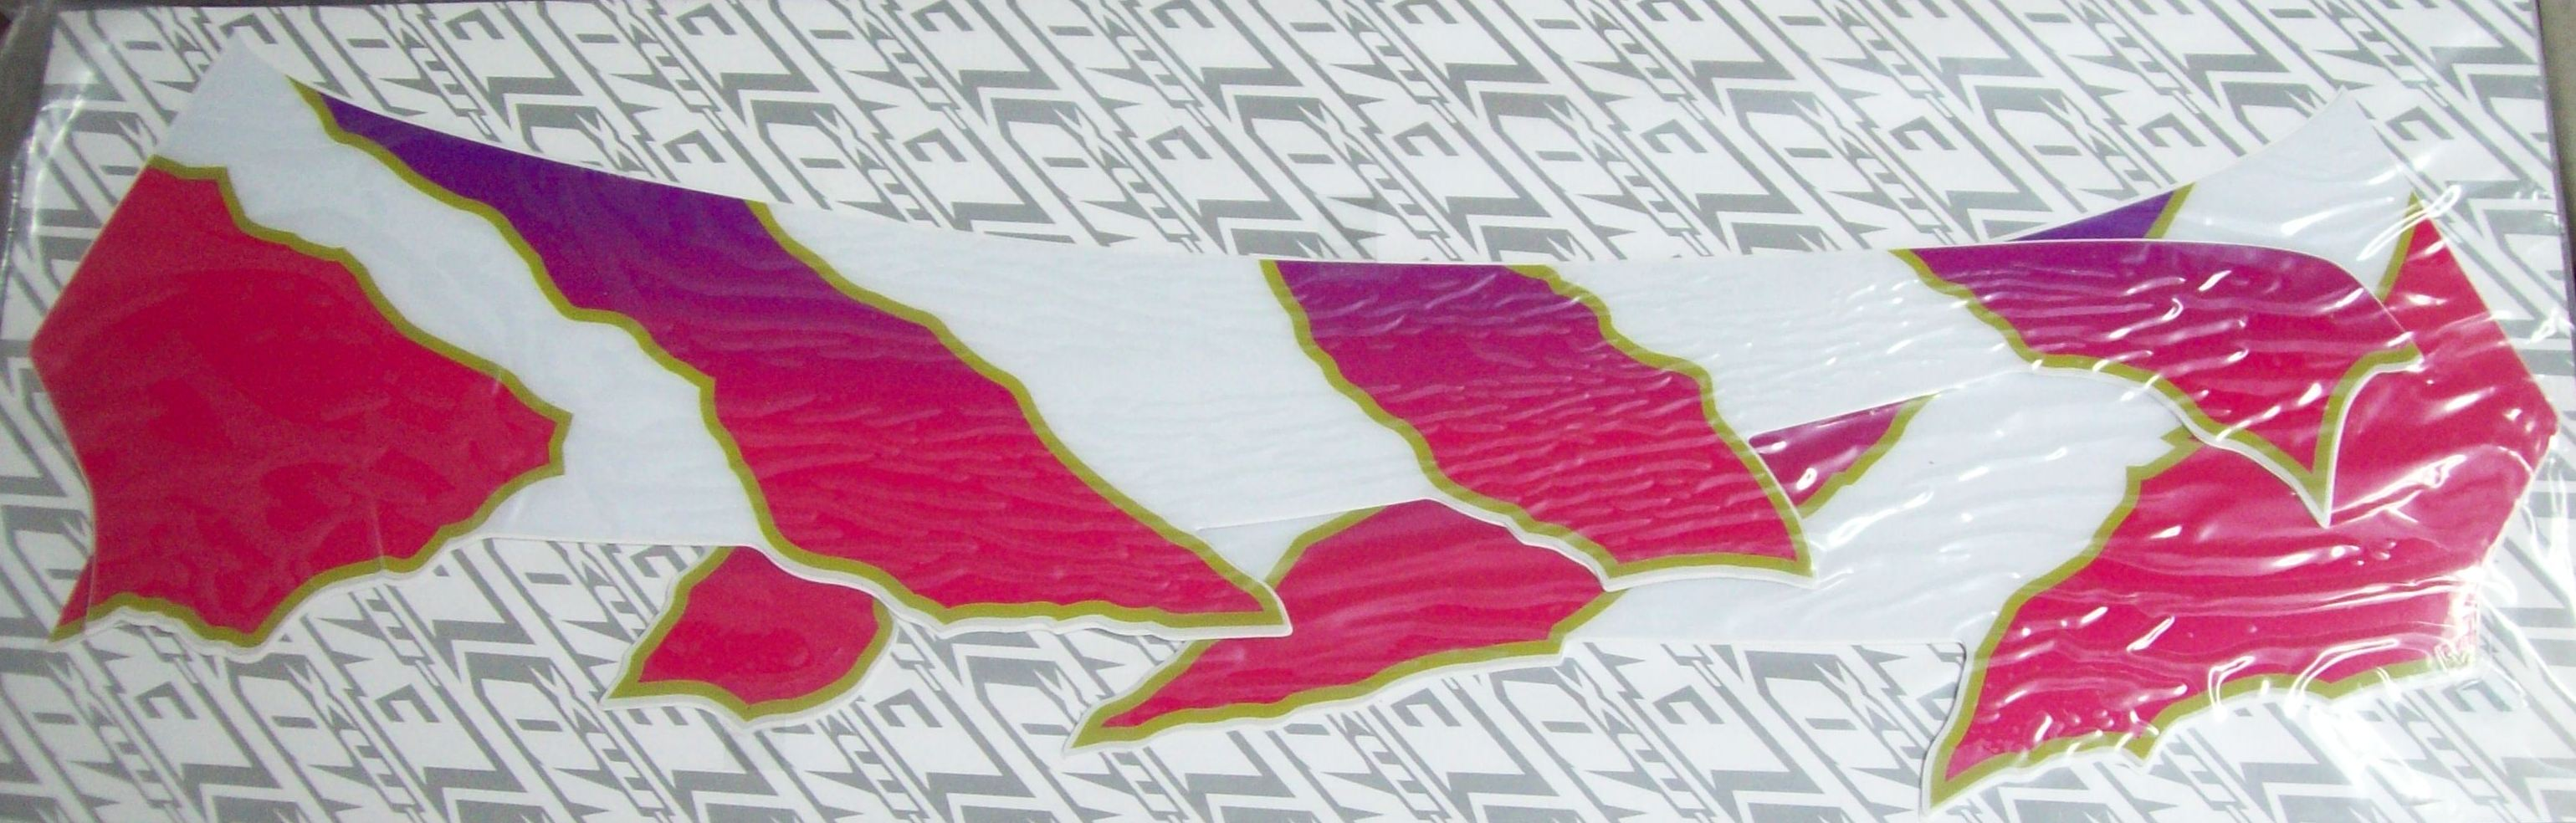 1992 Suzuki RM 250 Rear Fender Decal Stripes White Backing